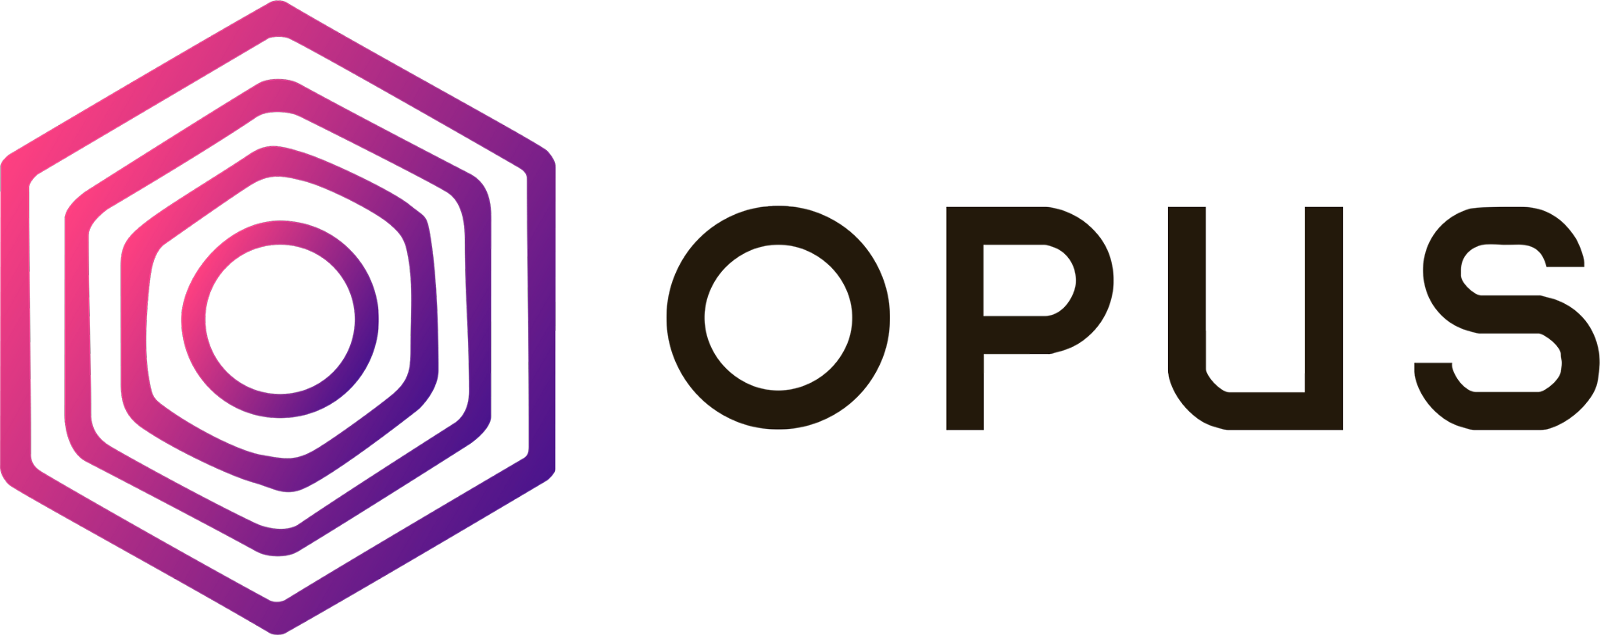 Blockchain music startup Opus is 'ready to conquer' in May